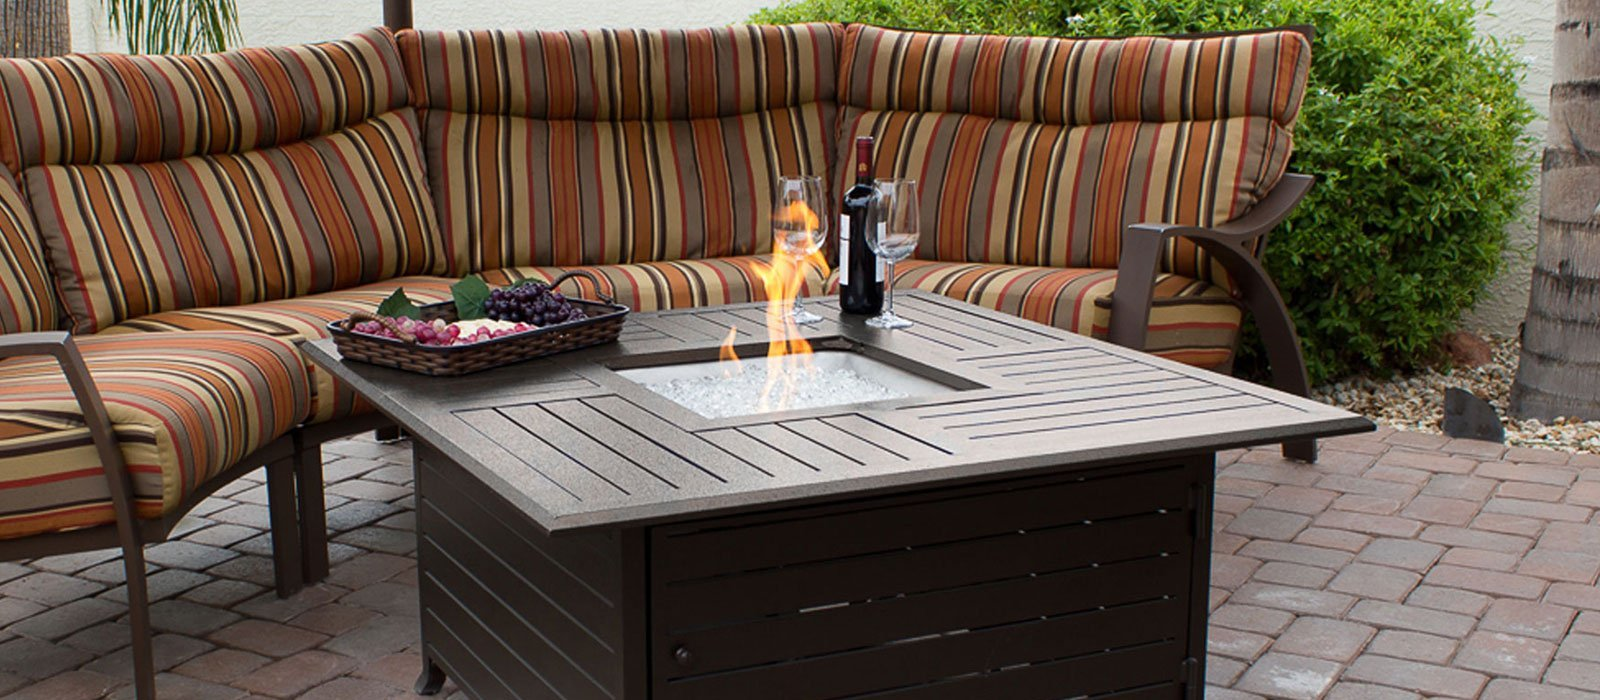 Charmant Extraordinary Fire Tables For Your Home